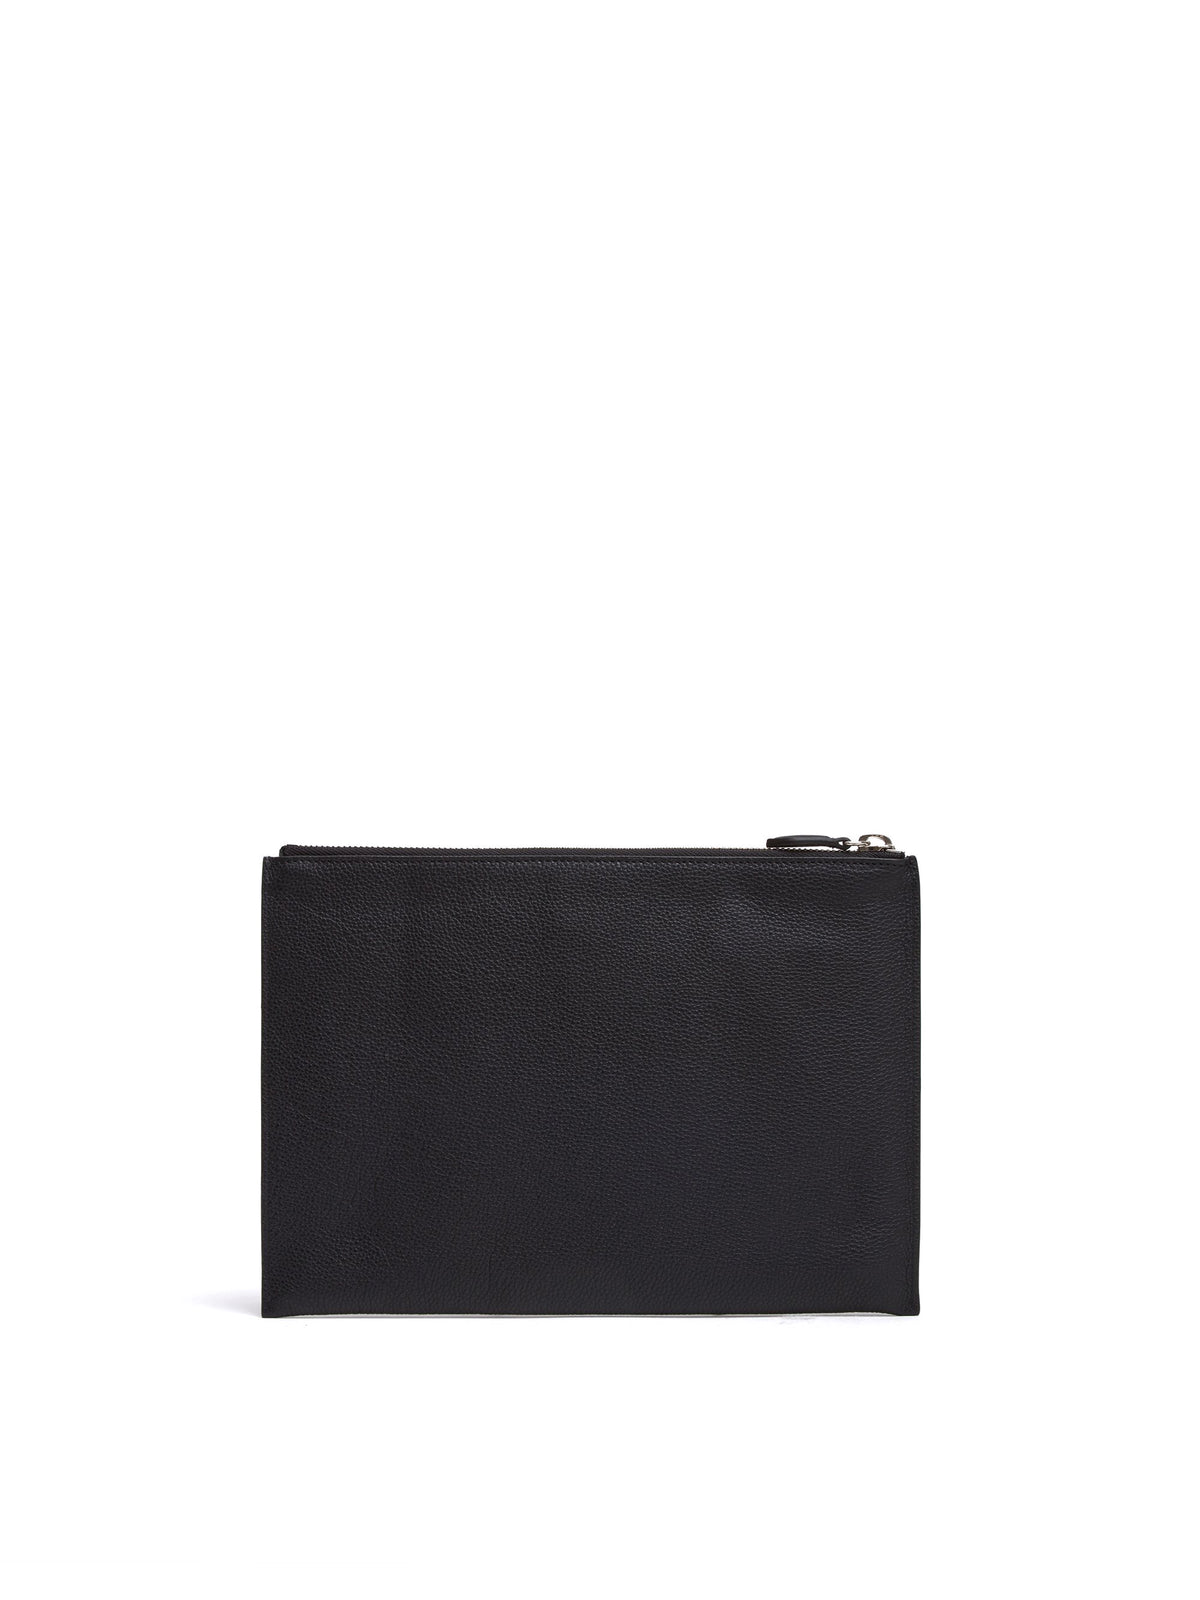 Mark Cross Leather Zip Pouch Tumbled Grain Black Back